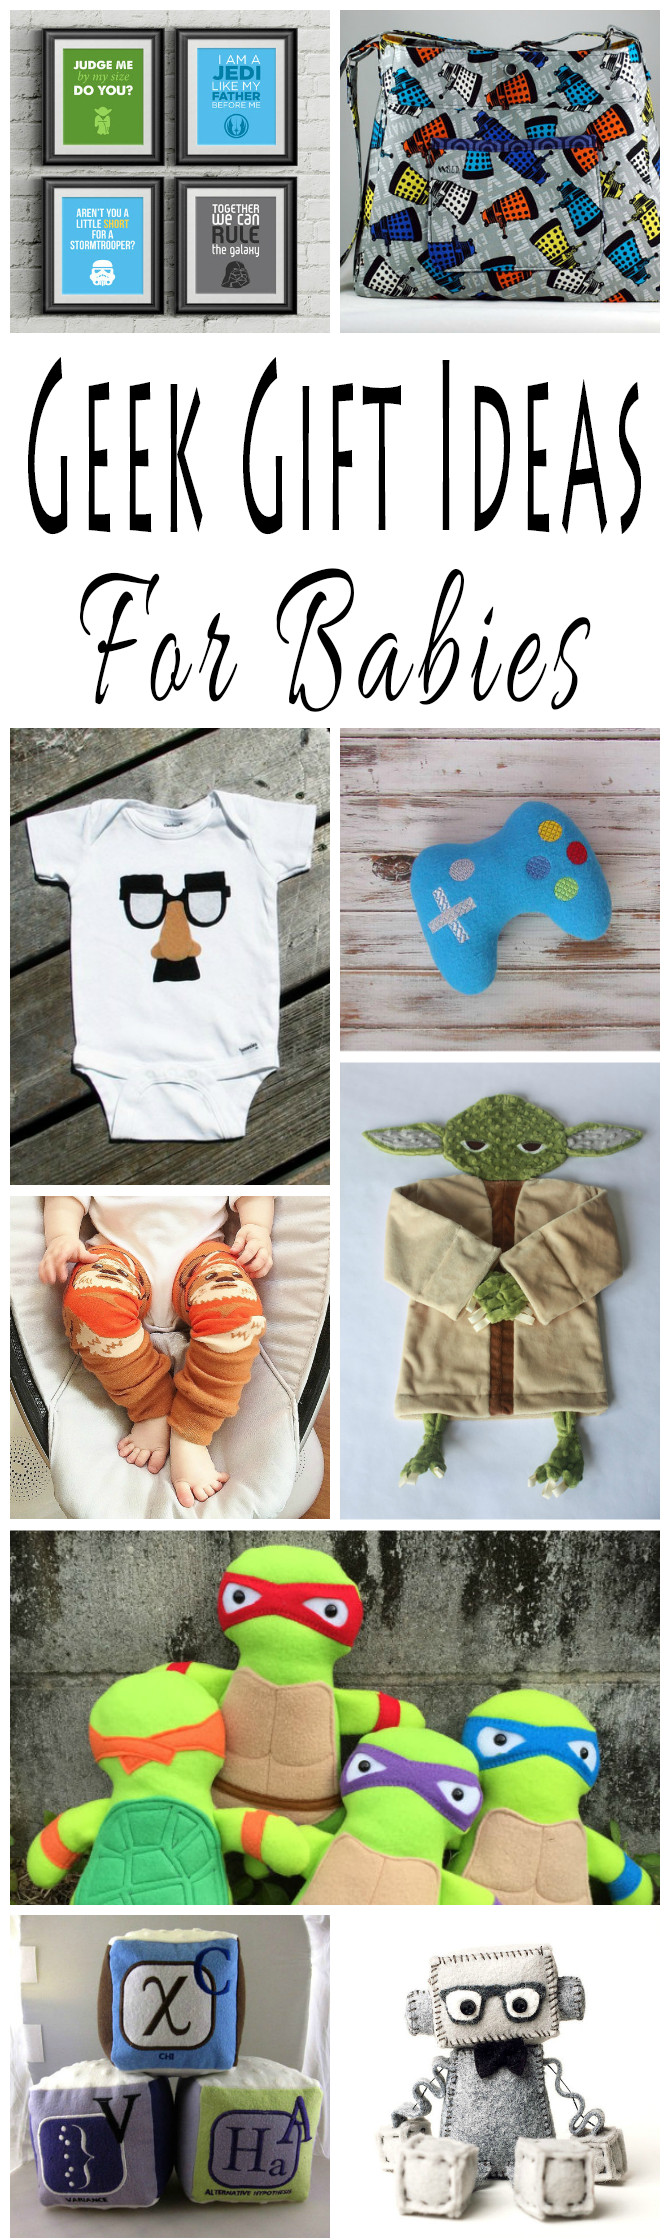 Best ideas about Nerdy Gift Ideas . Save or Pin 25 Adorkable Geek Gift Ideas For Babies Now.